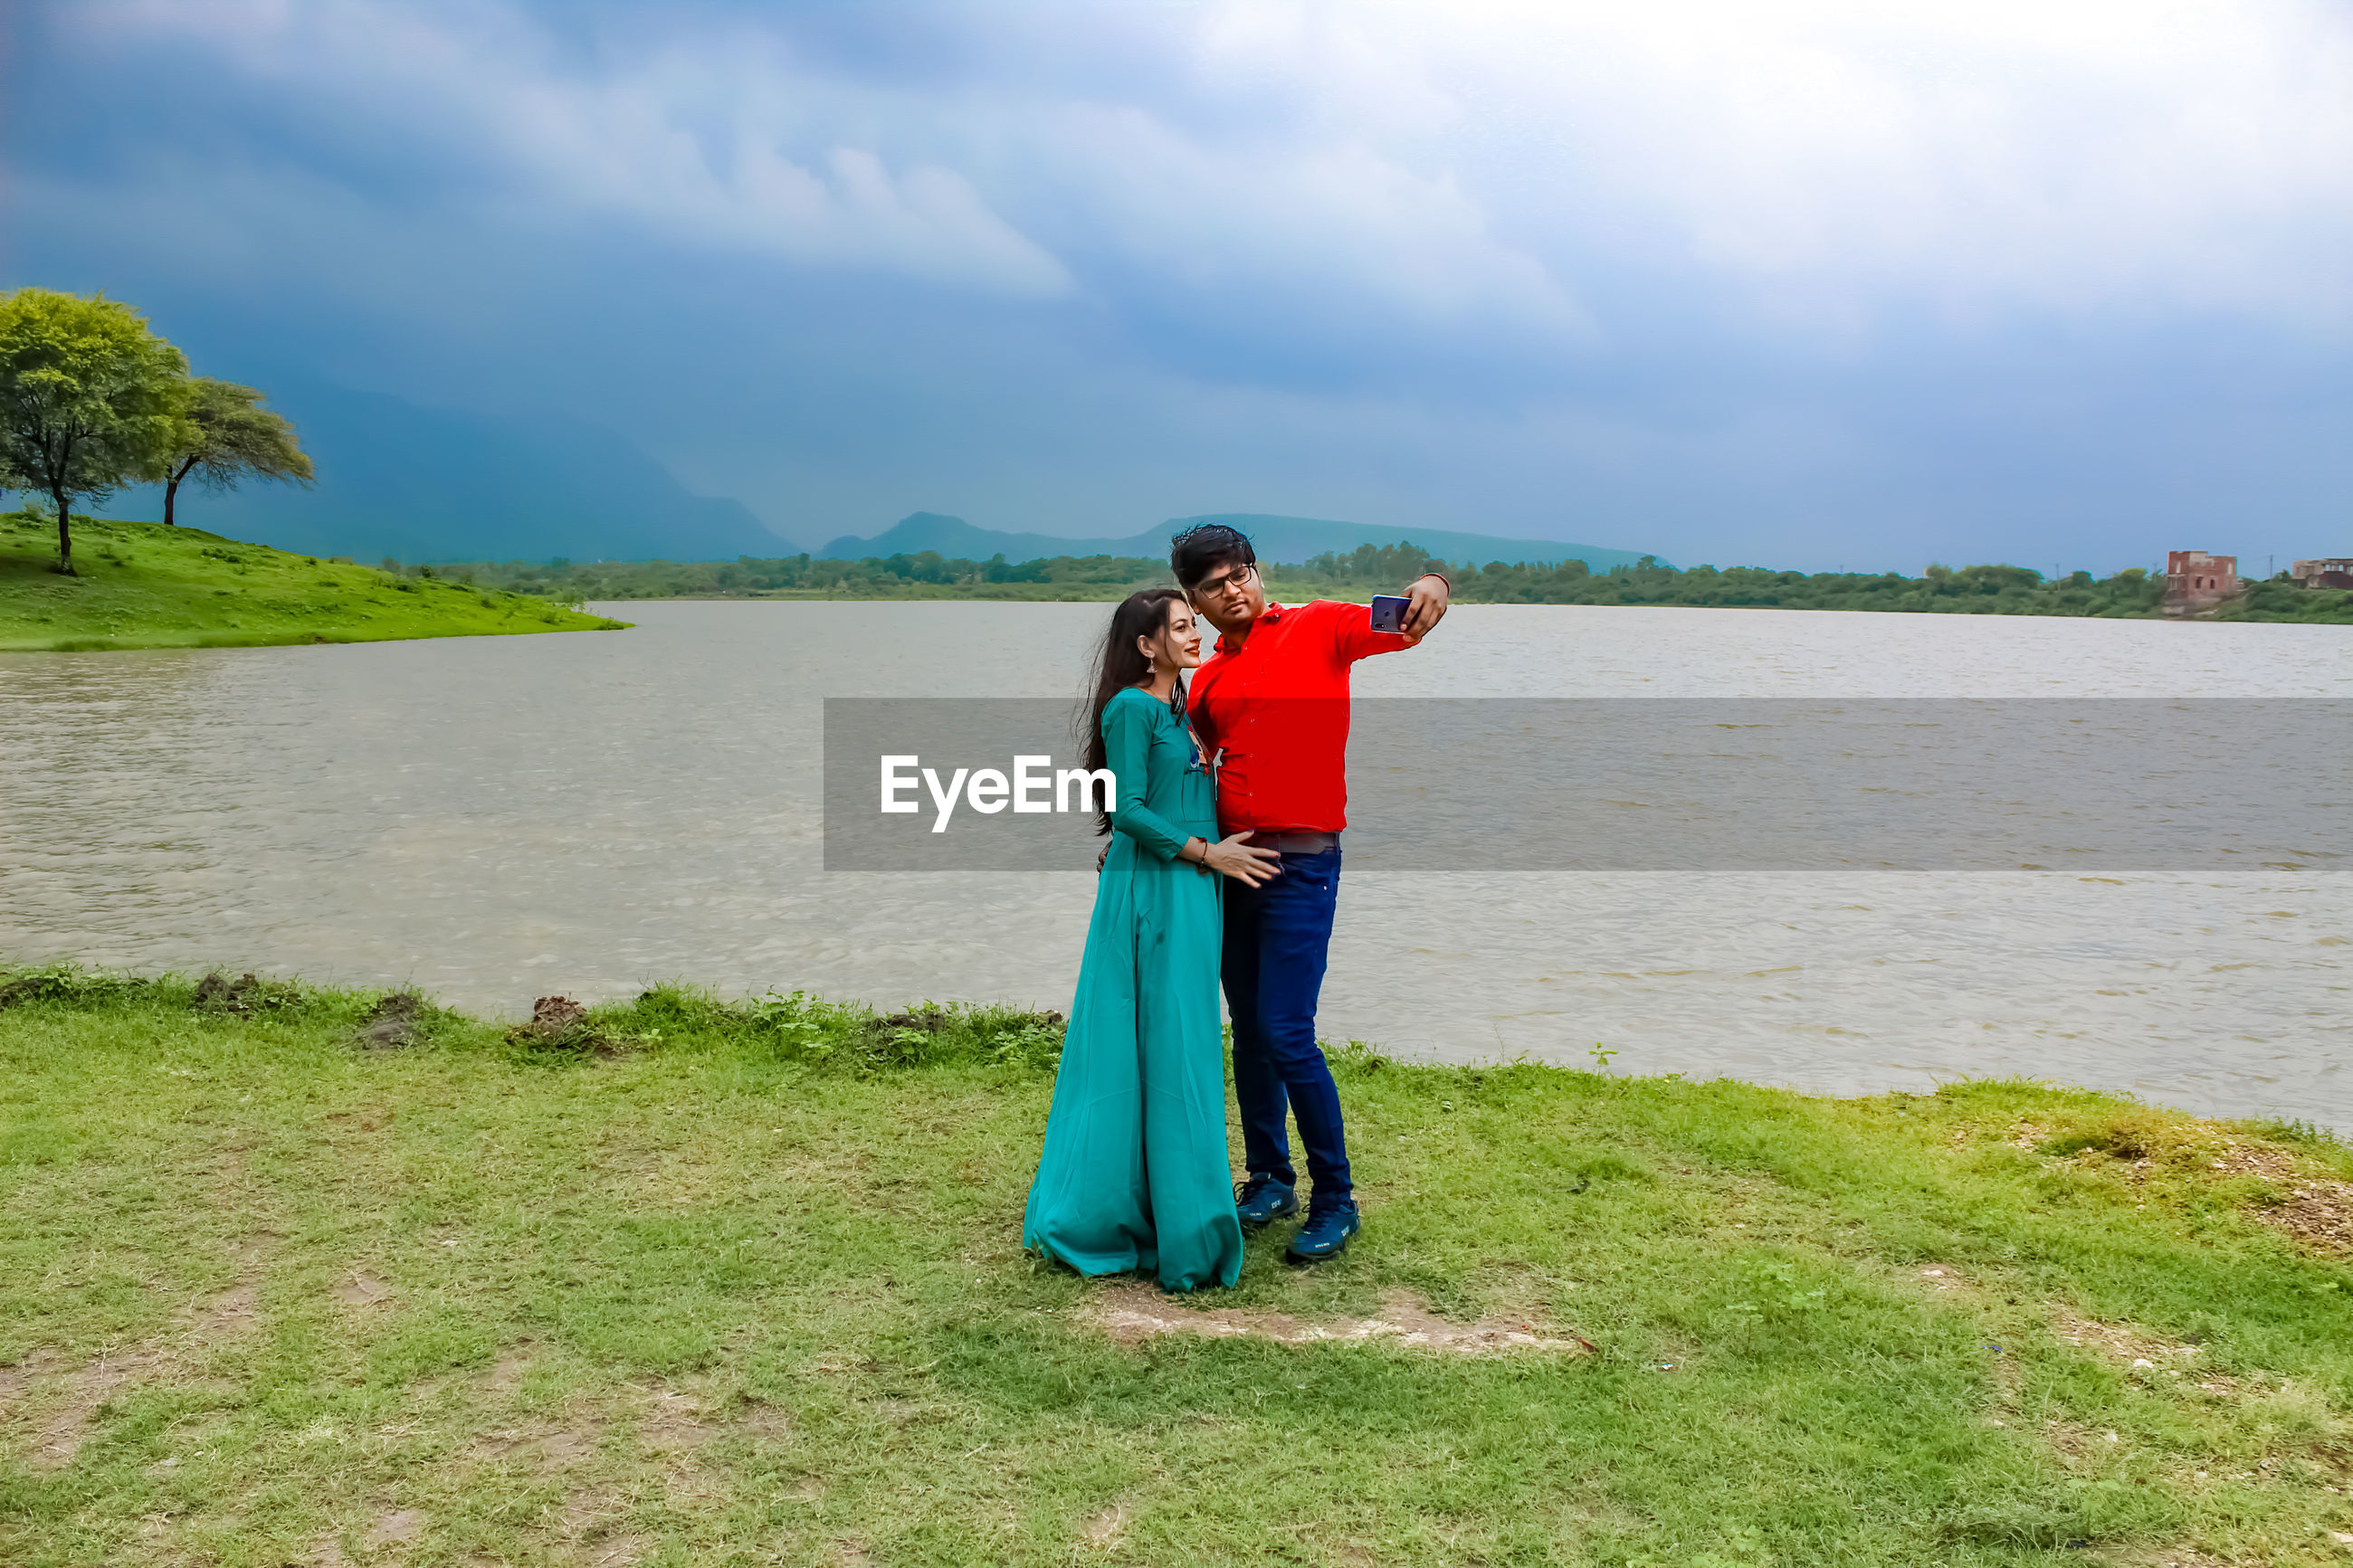 Couple taking selfie with mobile phone while standing on grass by lake against sky